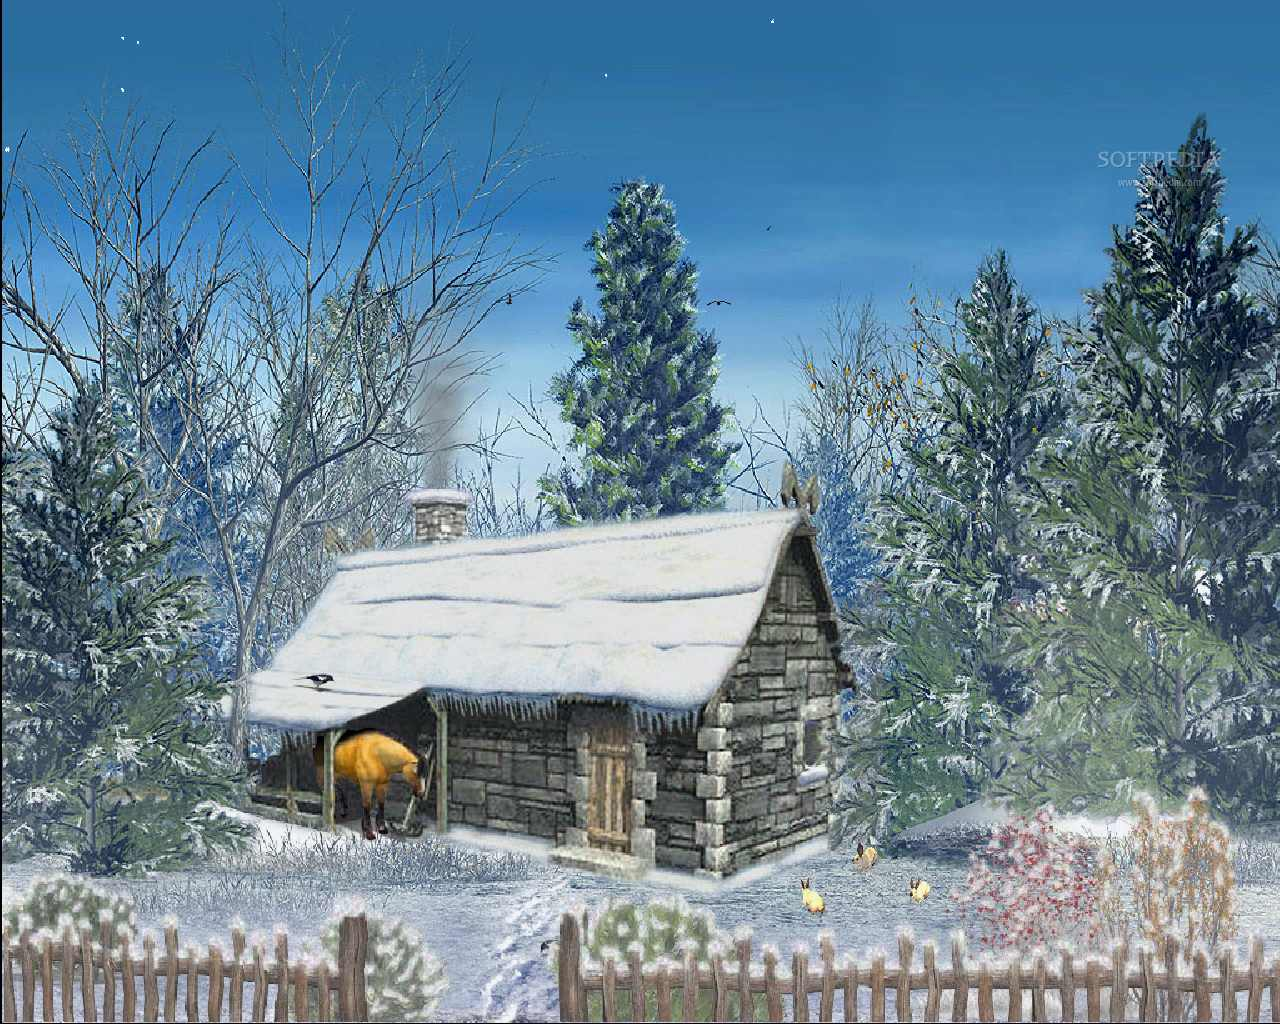 Snowy Hut   Animated Screensaver   This is the image displayed by 1280x1024